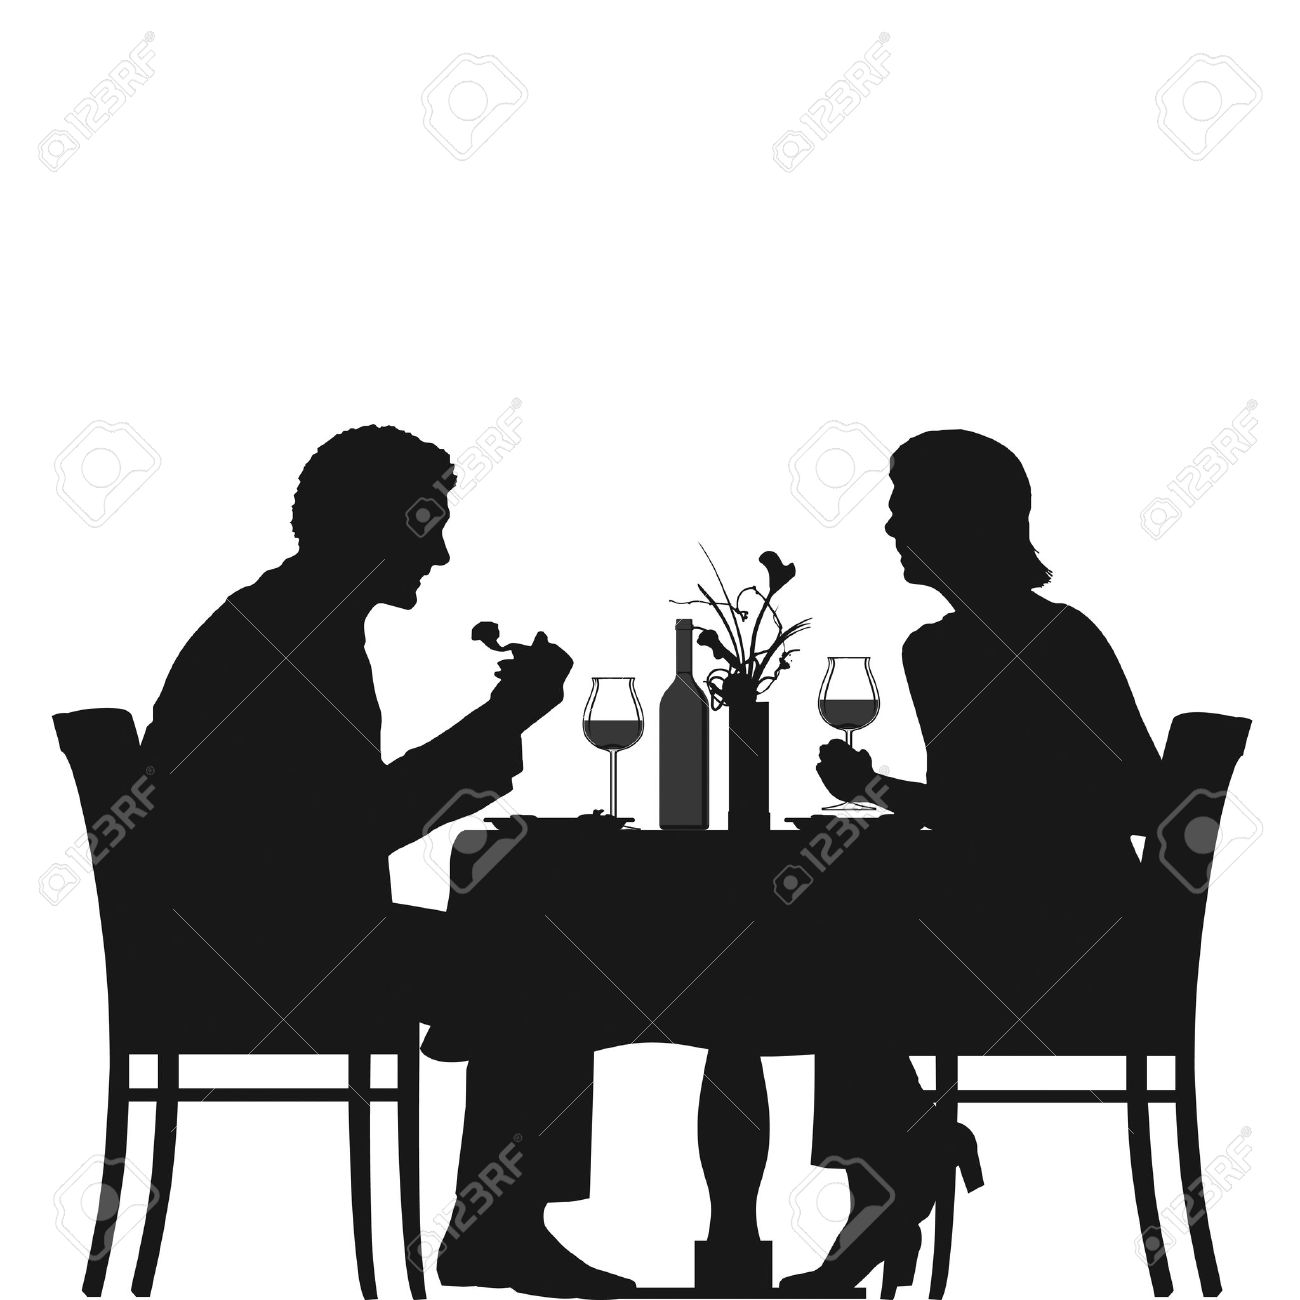 Dinner for two clipart 9 » Clipart Station.